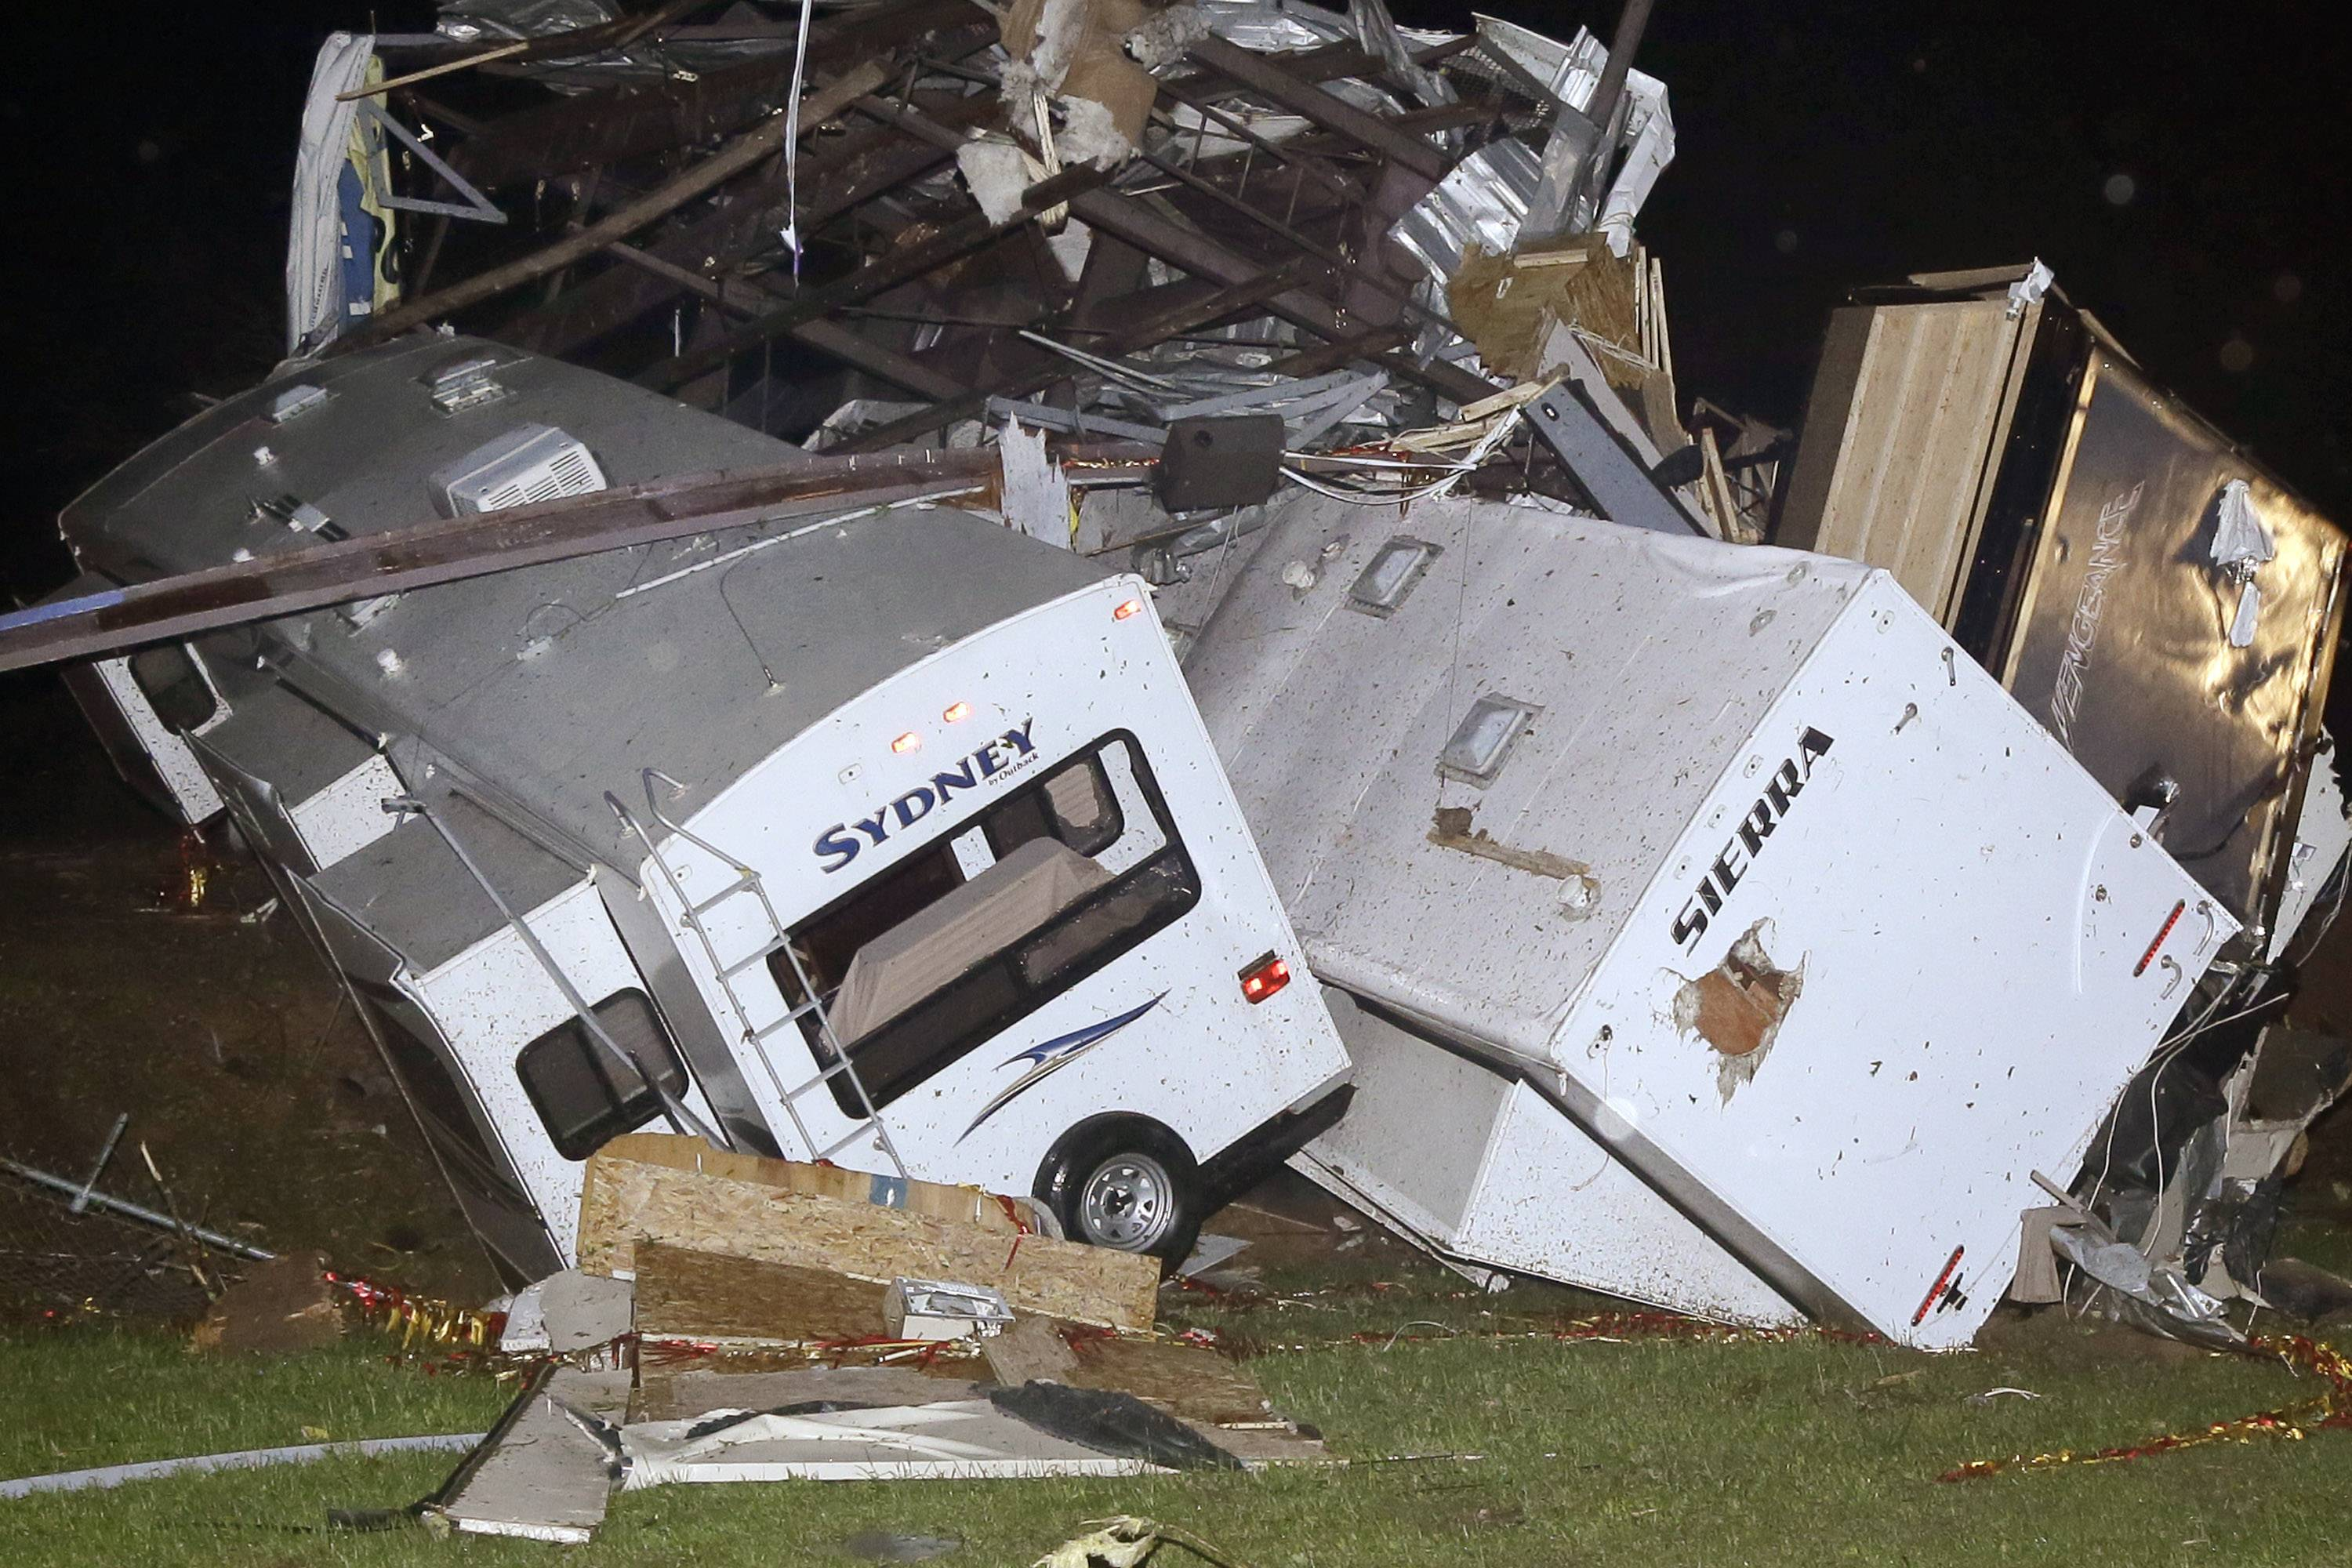 Travel trailers and motor homes are piled on top of each other at Mayflower RV in Mayflower, Ark., Sunday, April 27, 2014. A powerful storm system rumbled through the central and southern United States on Sunday, spawning tornadoes.